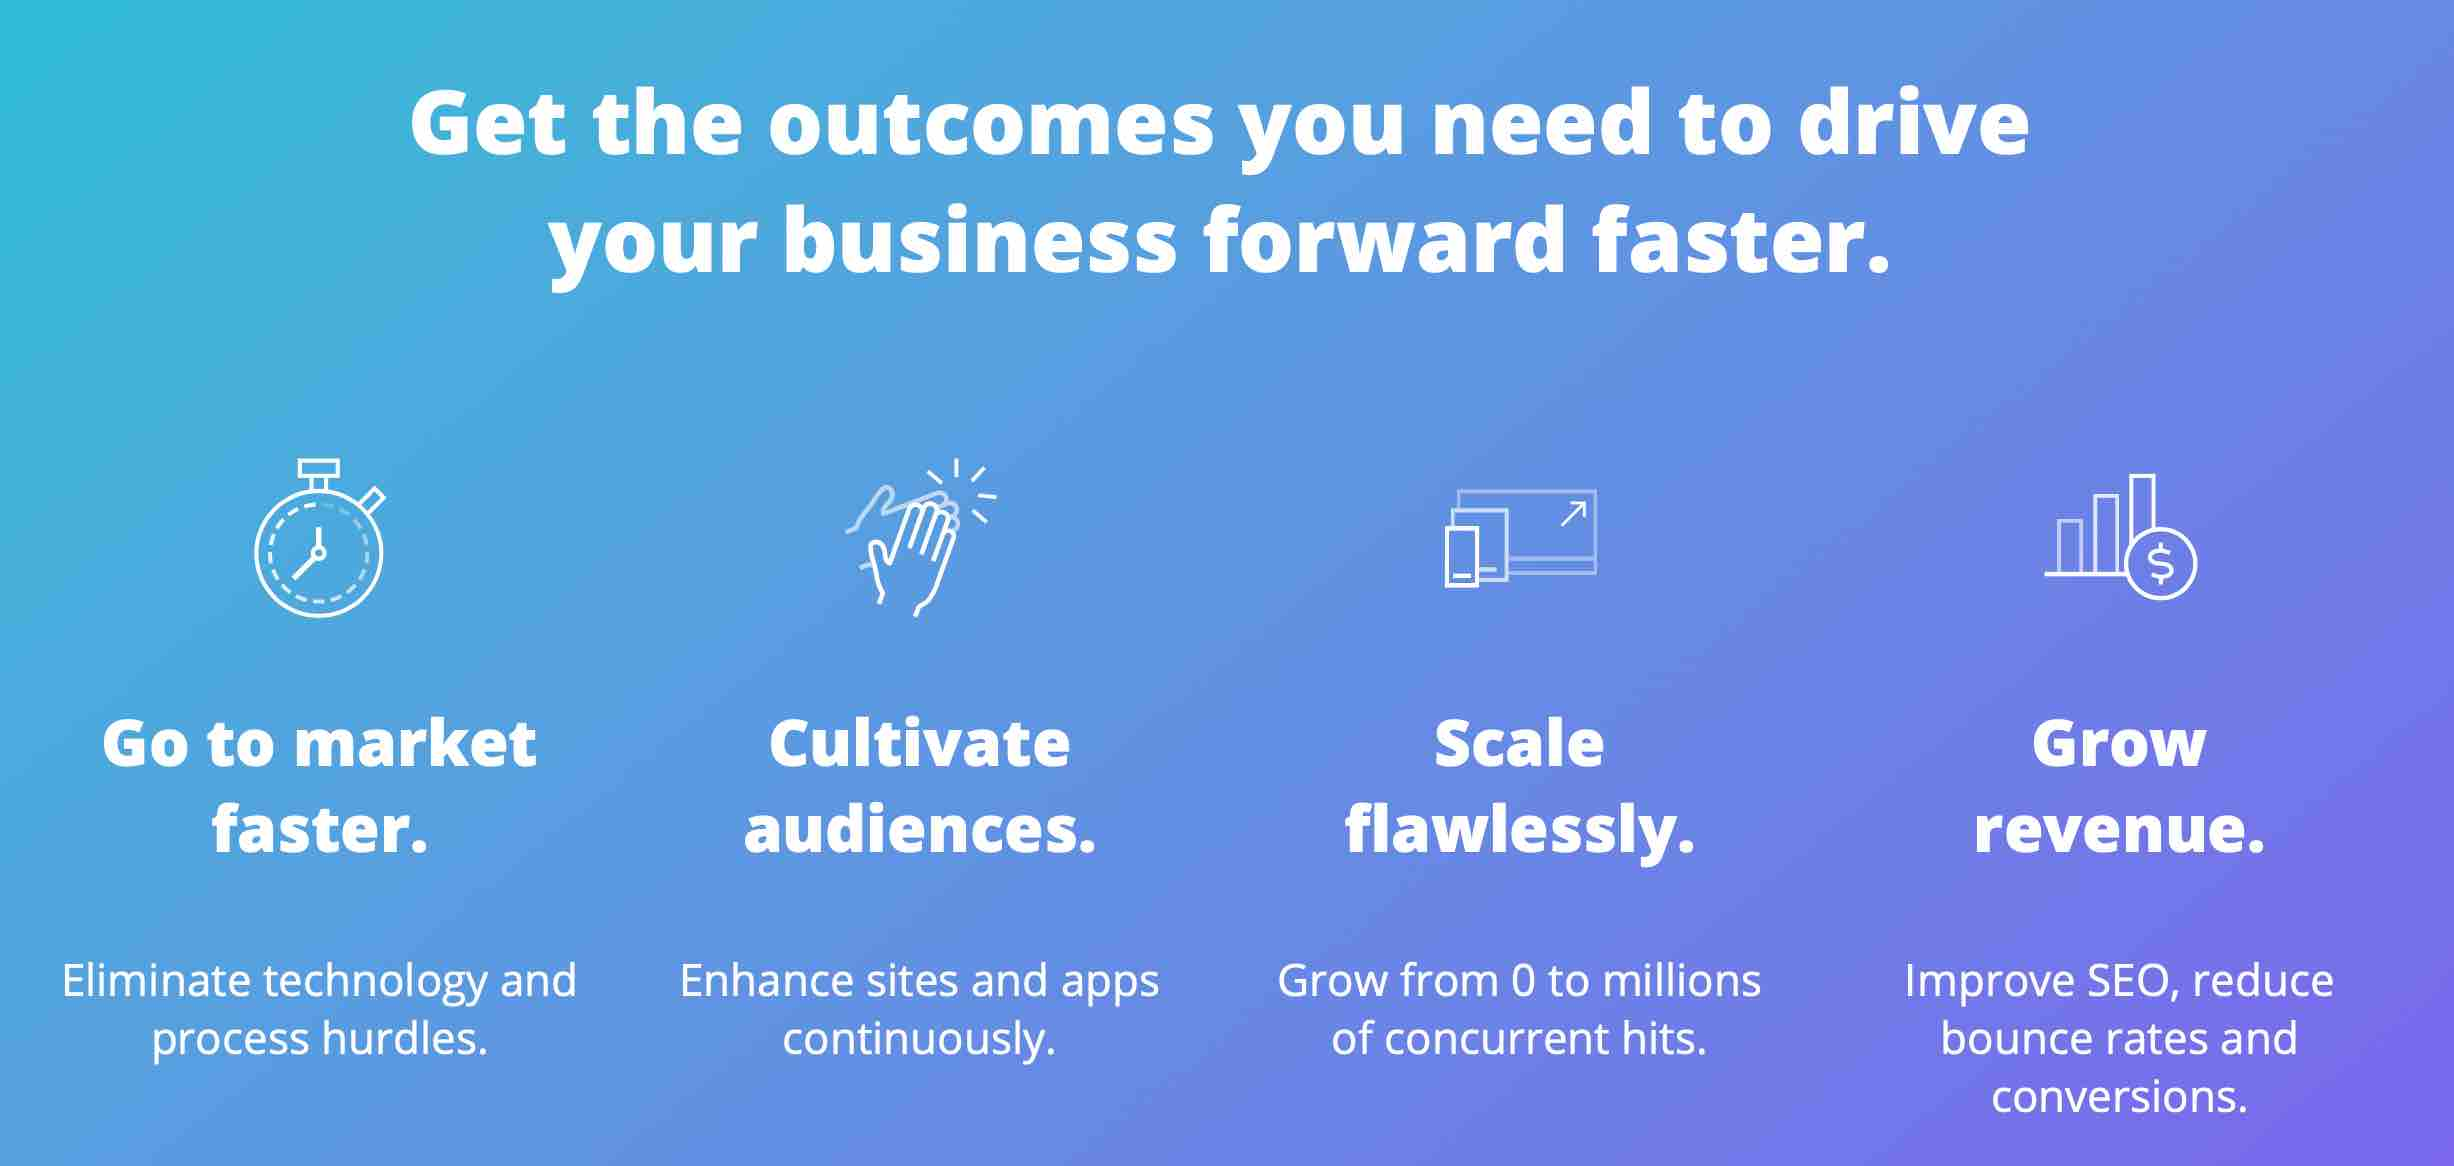 Get the outcomes you need to drive your business forward faster